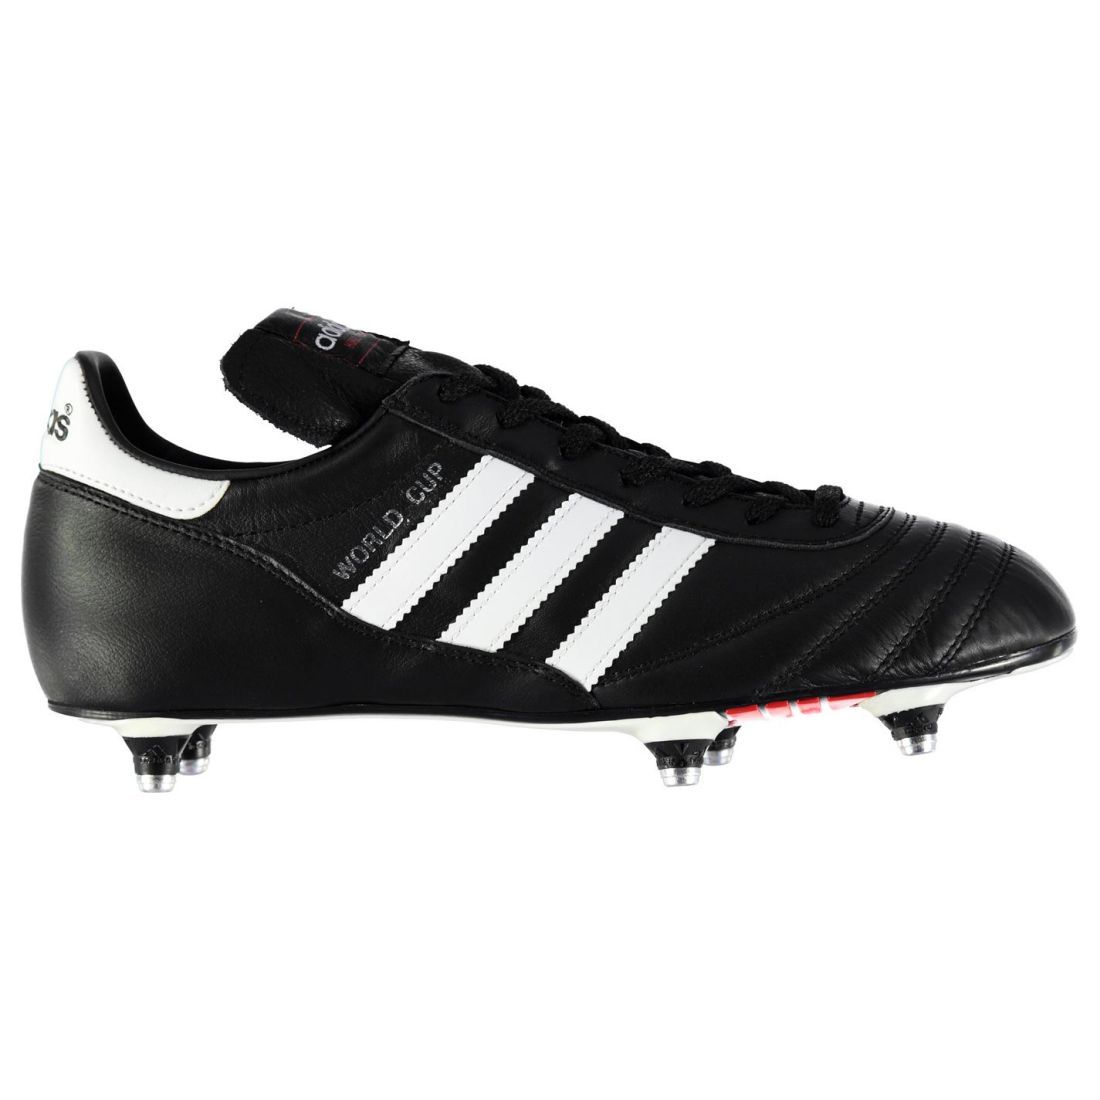 802222ac6d62 adidas Mens Gents World Cup SG Football Boots Laces Fastened ...